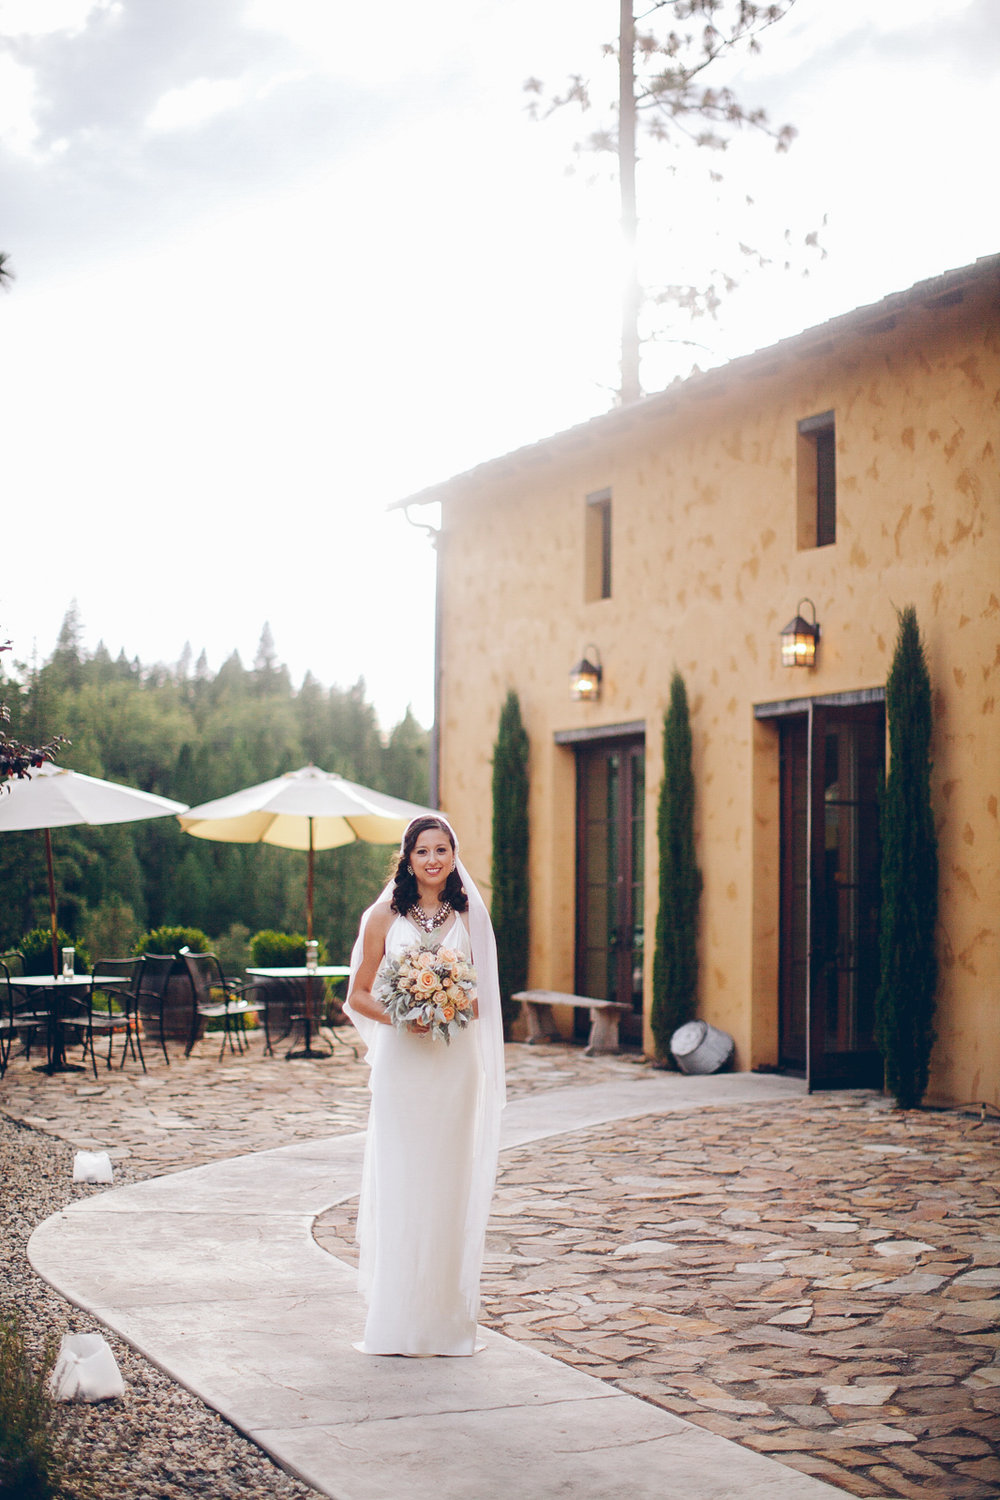 miraflores_winery_wedding_photography_ian_melissa_ebony_siovhan_bokeh_photography_32.jpg